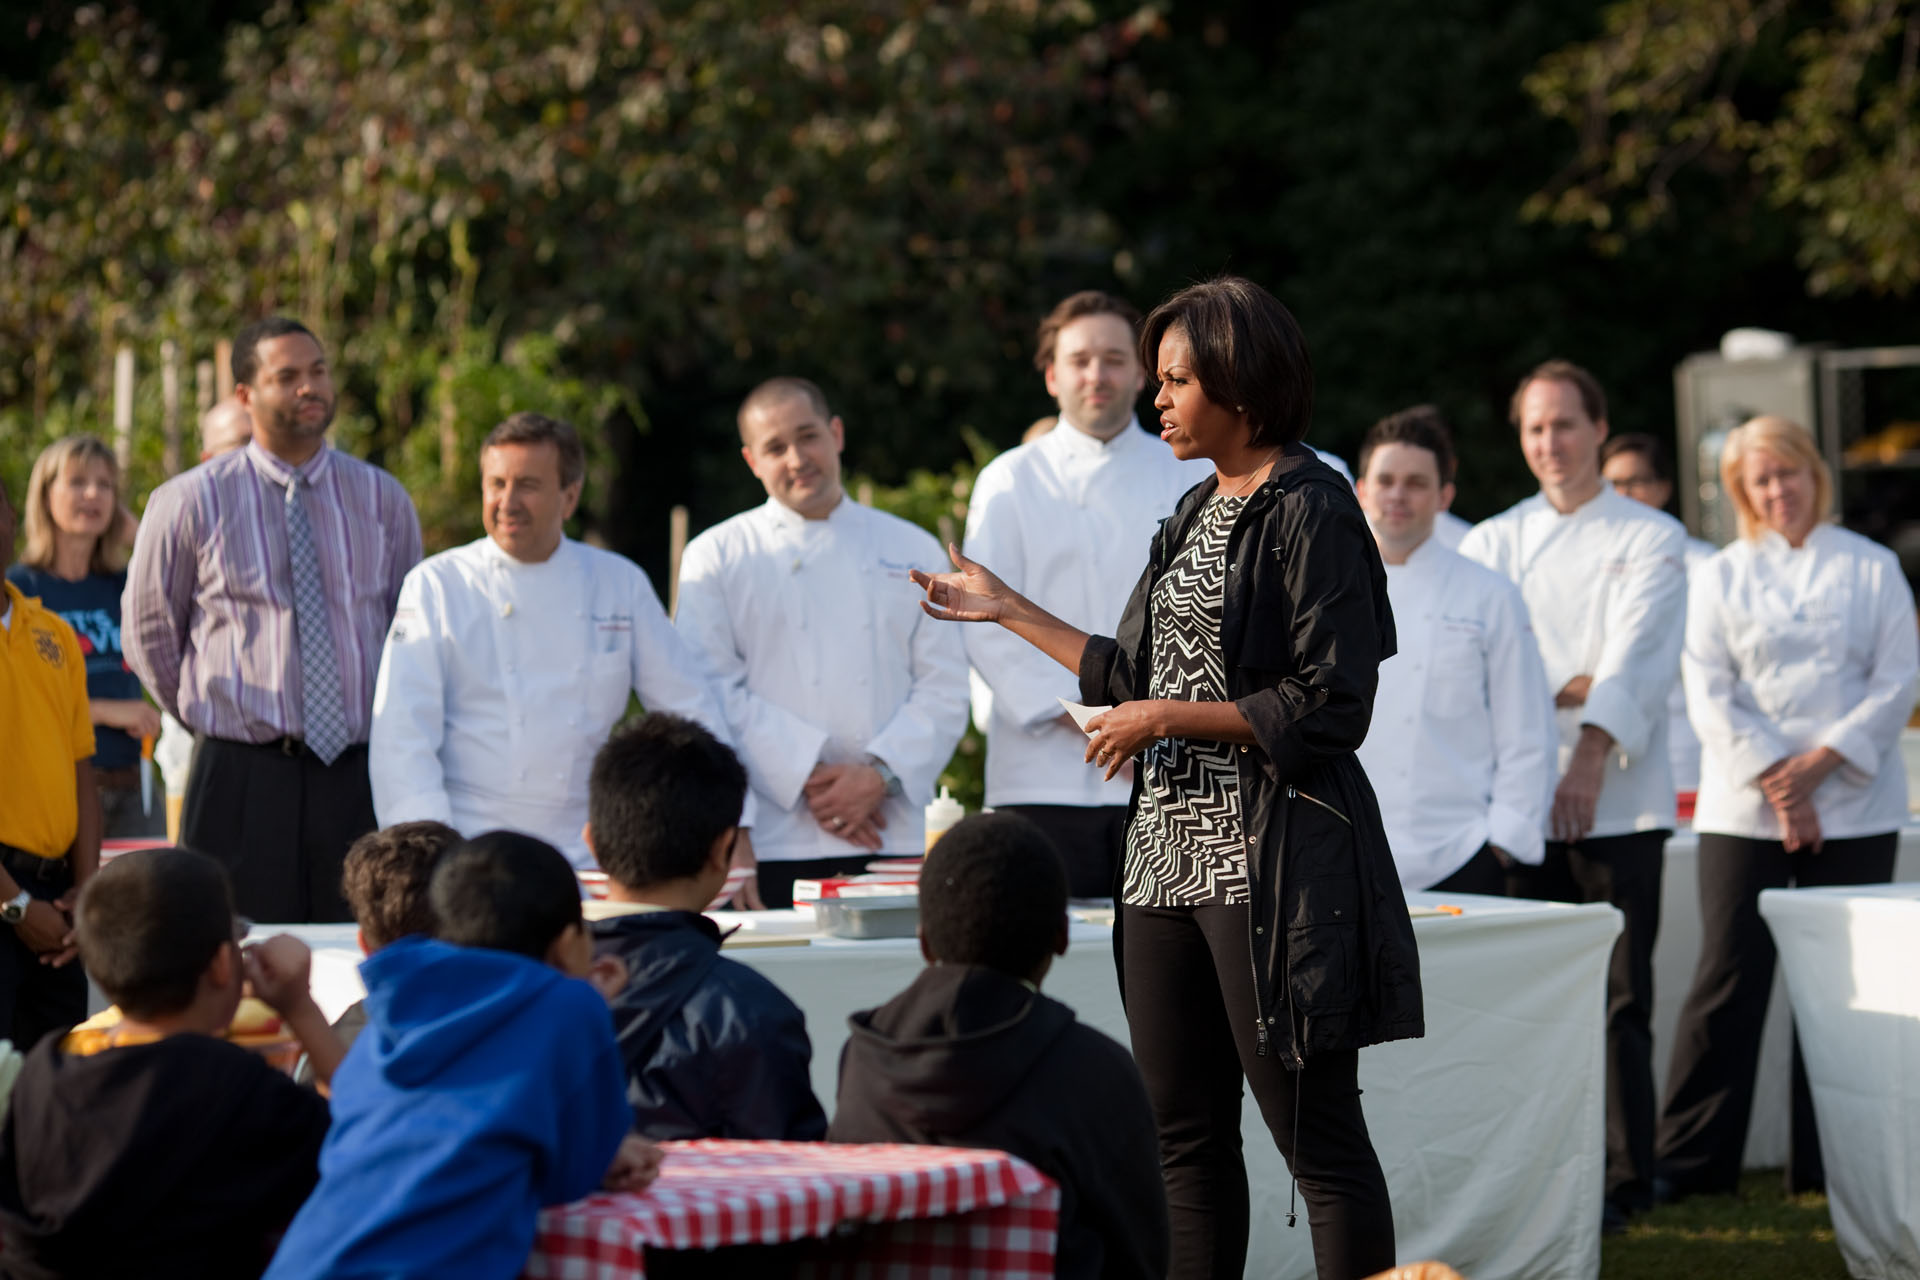 The First Lady Speaks During the Fall White House Garden Harvest